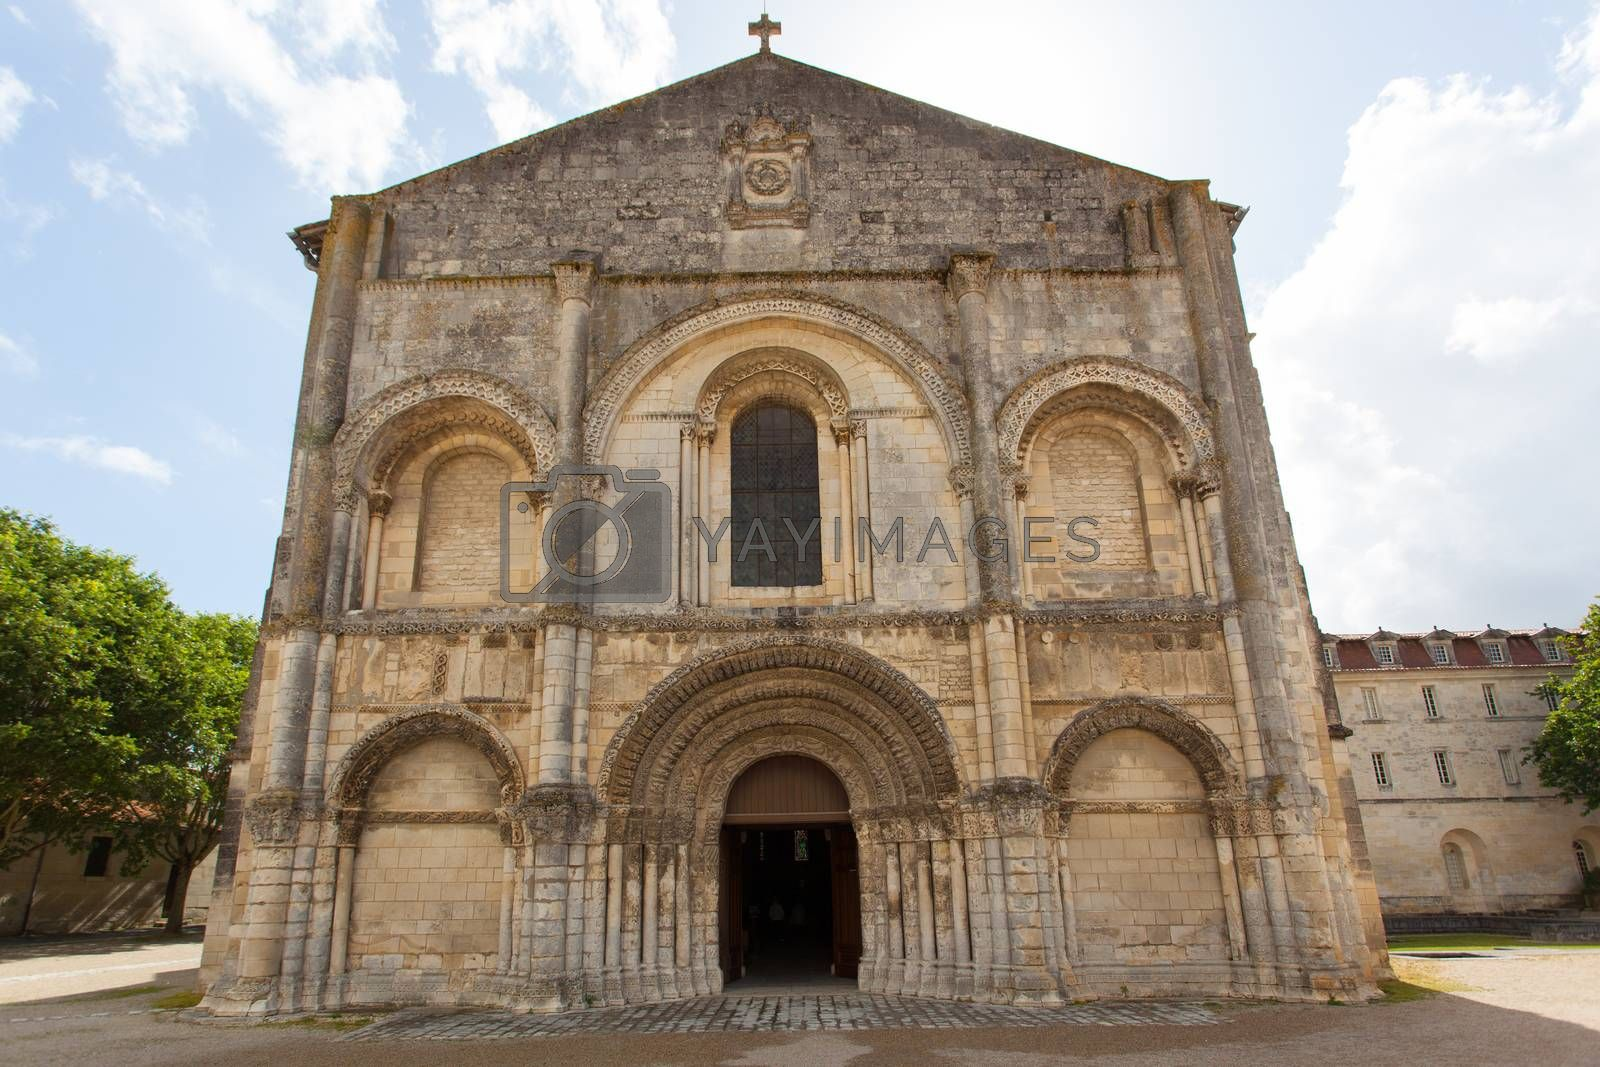 Full view of beautiful romanesque facade in Saintes Framce .Abbey aux Dames